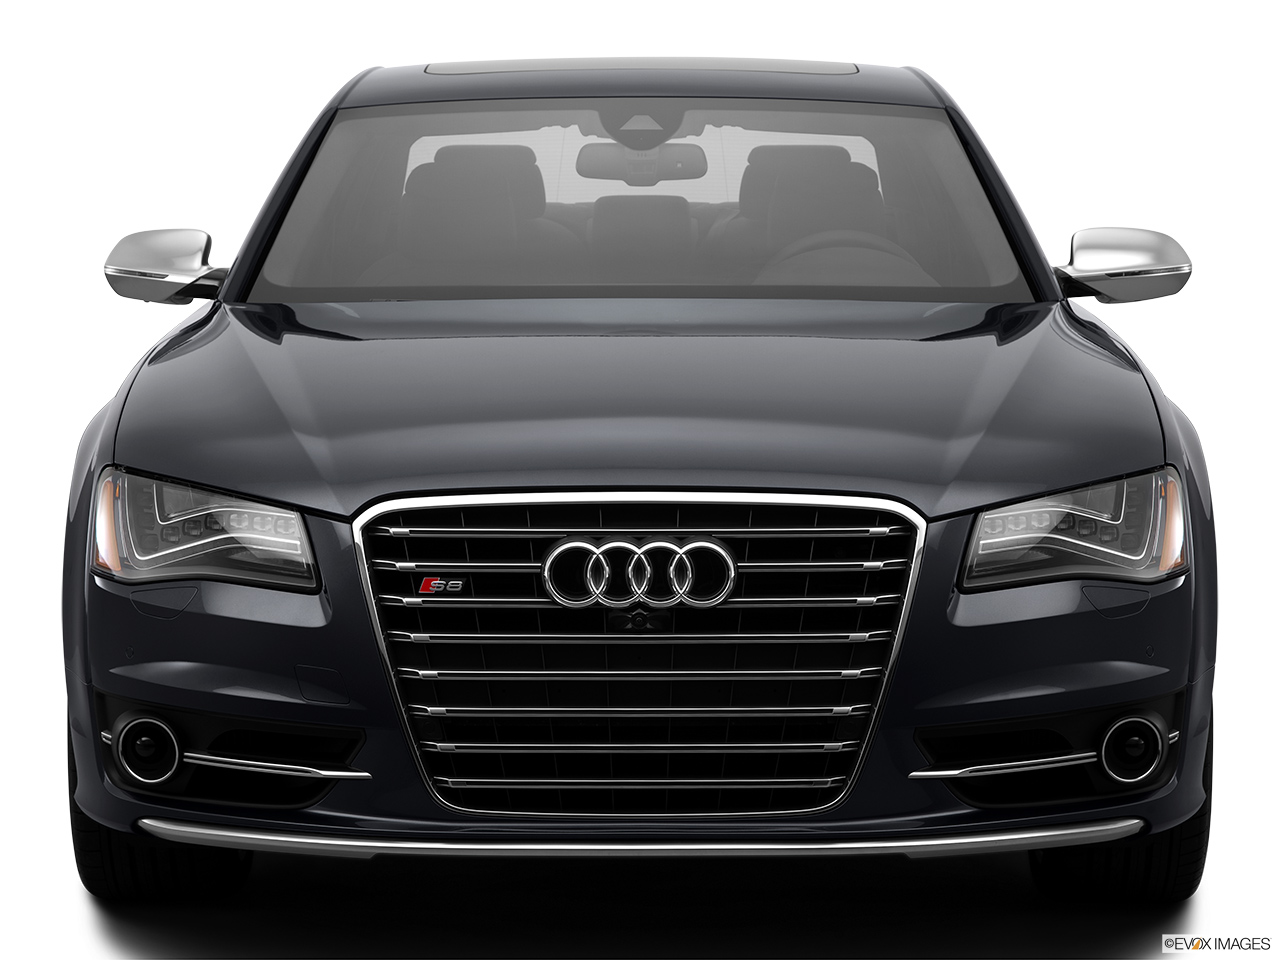 2014 Audi S8 4.0 TFSI Low/wide front.